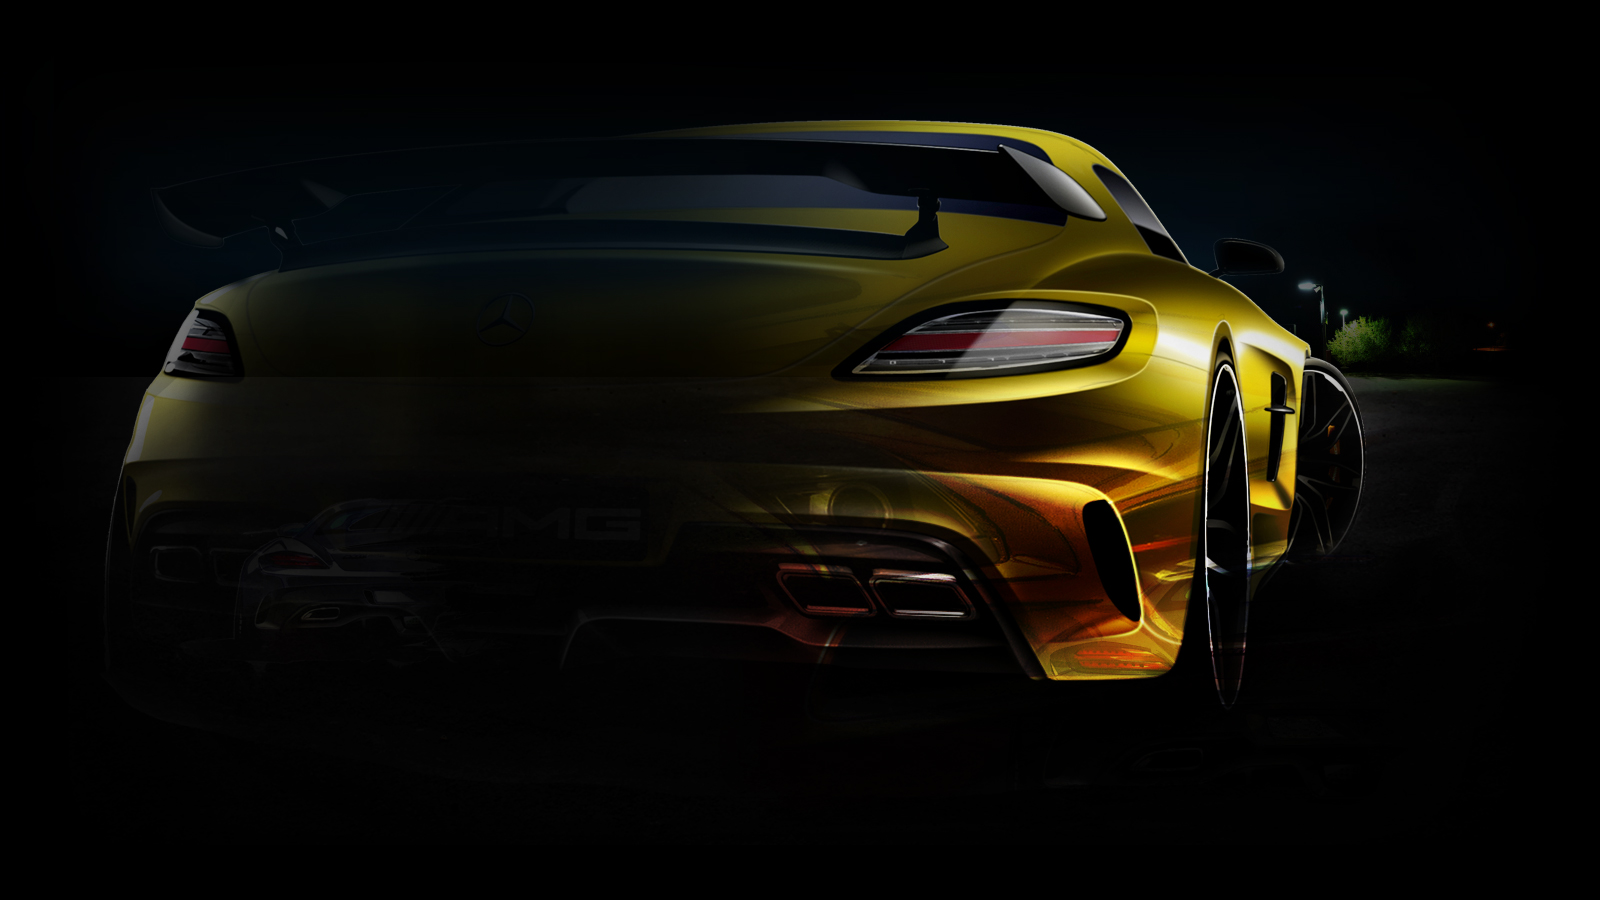 Sls Amg Black Series Wallpaper